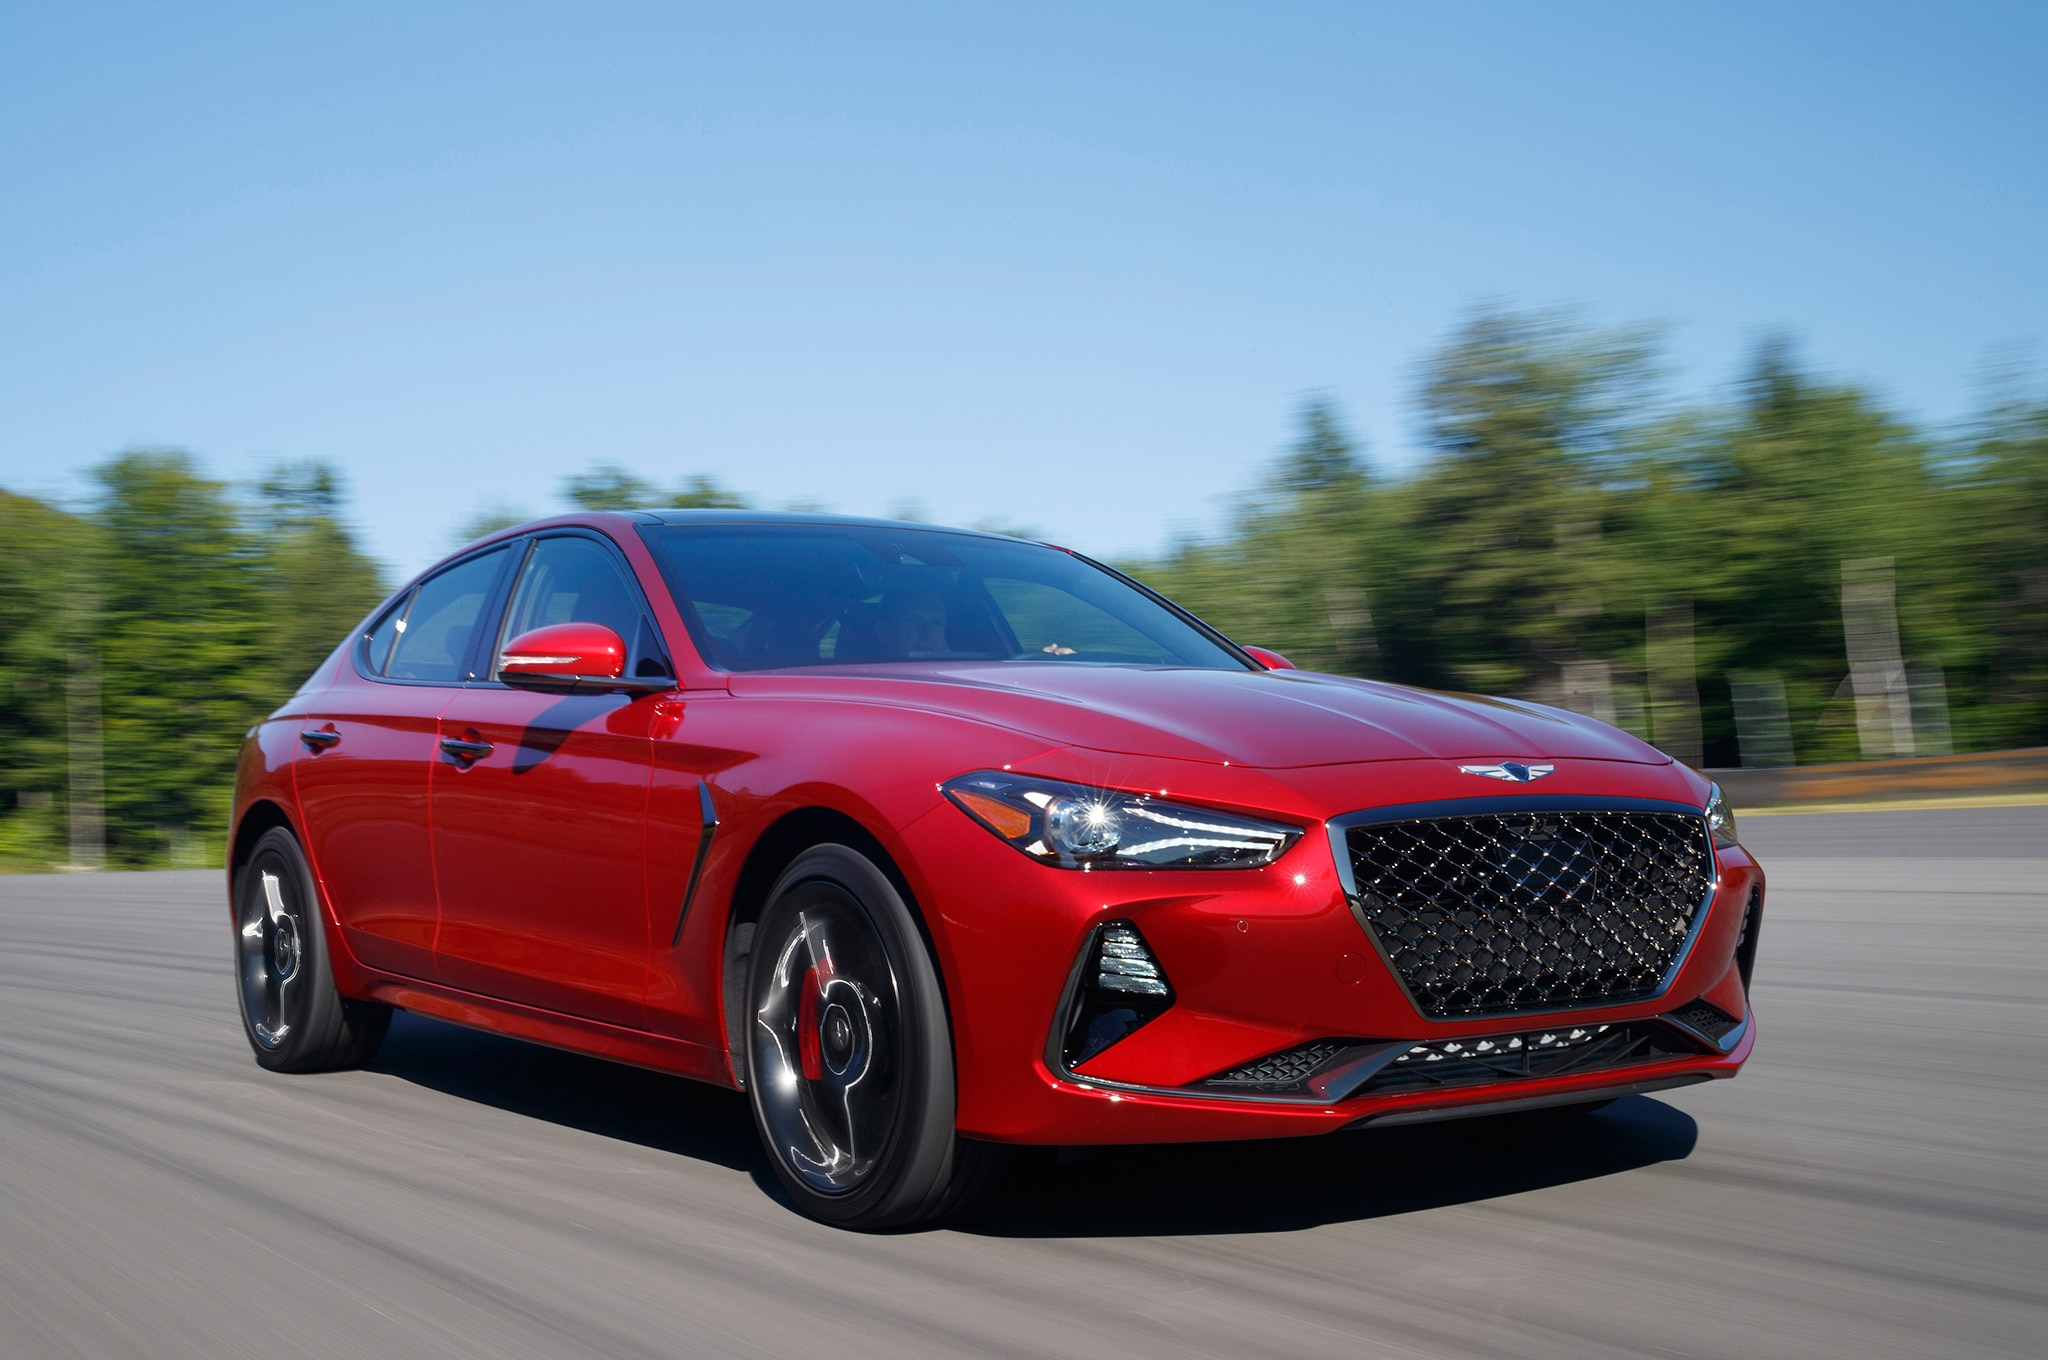 2019 Genesis G70 33T Front Three Quarter In Motion 3